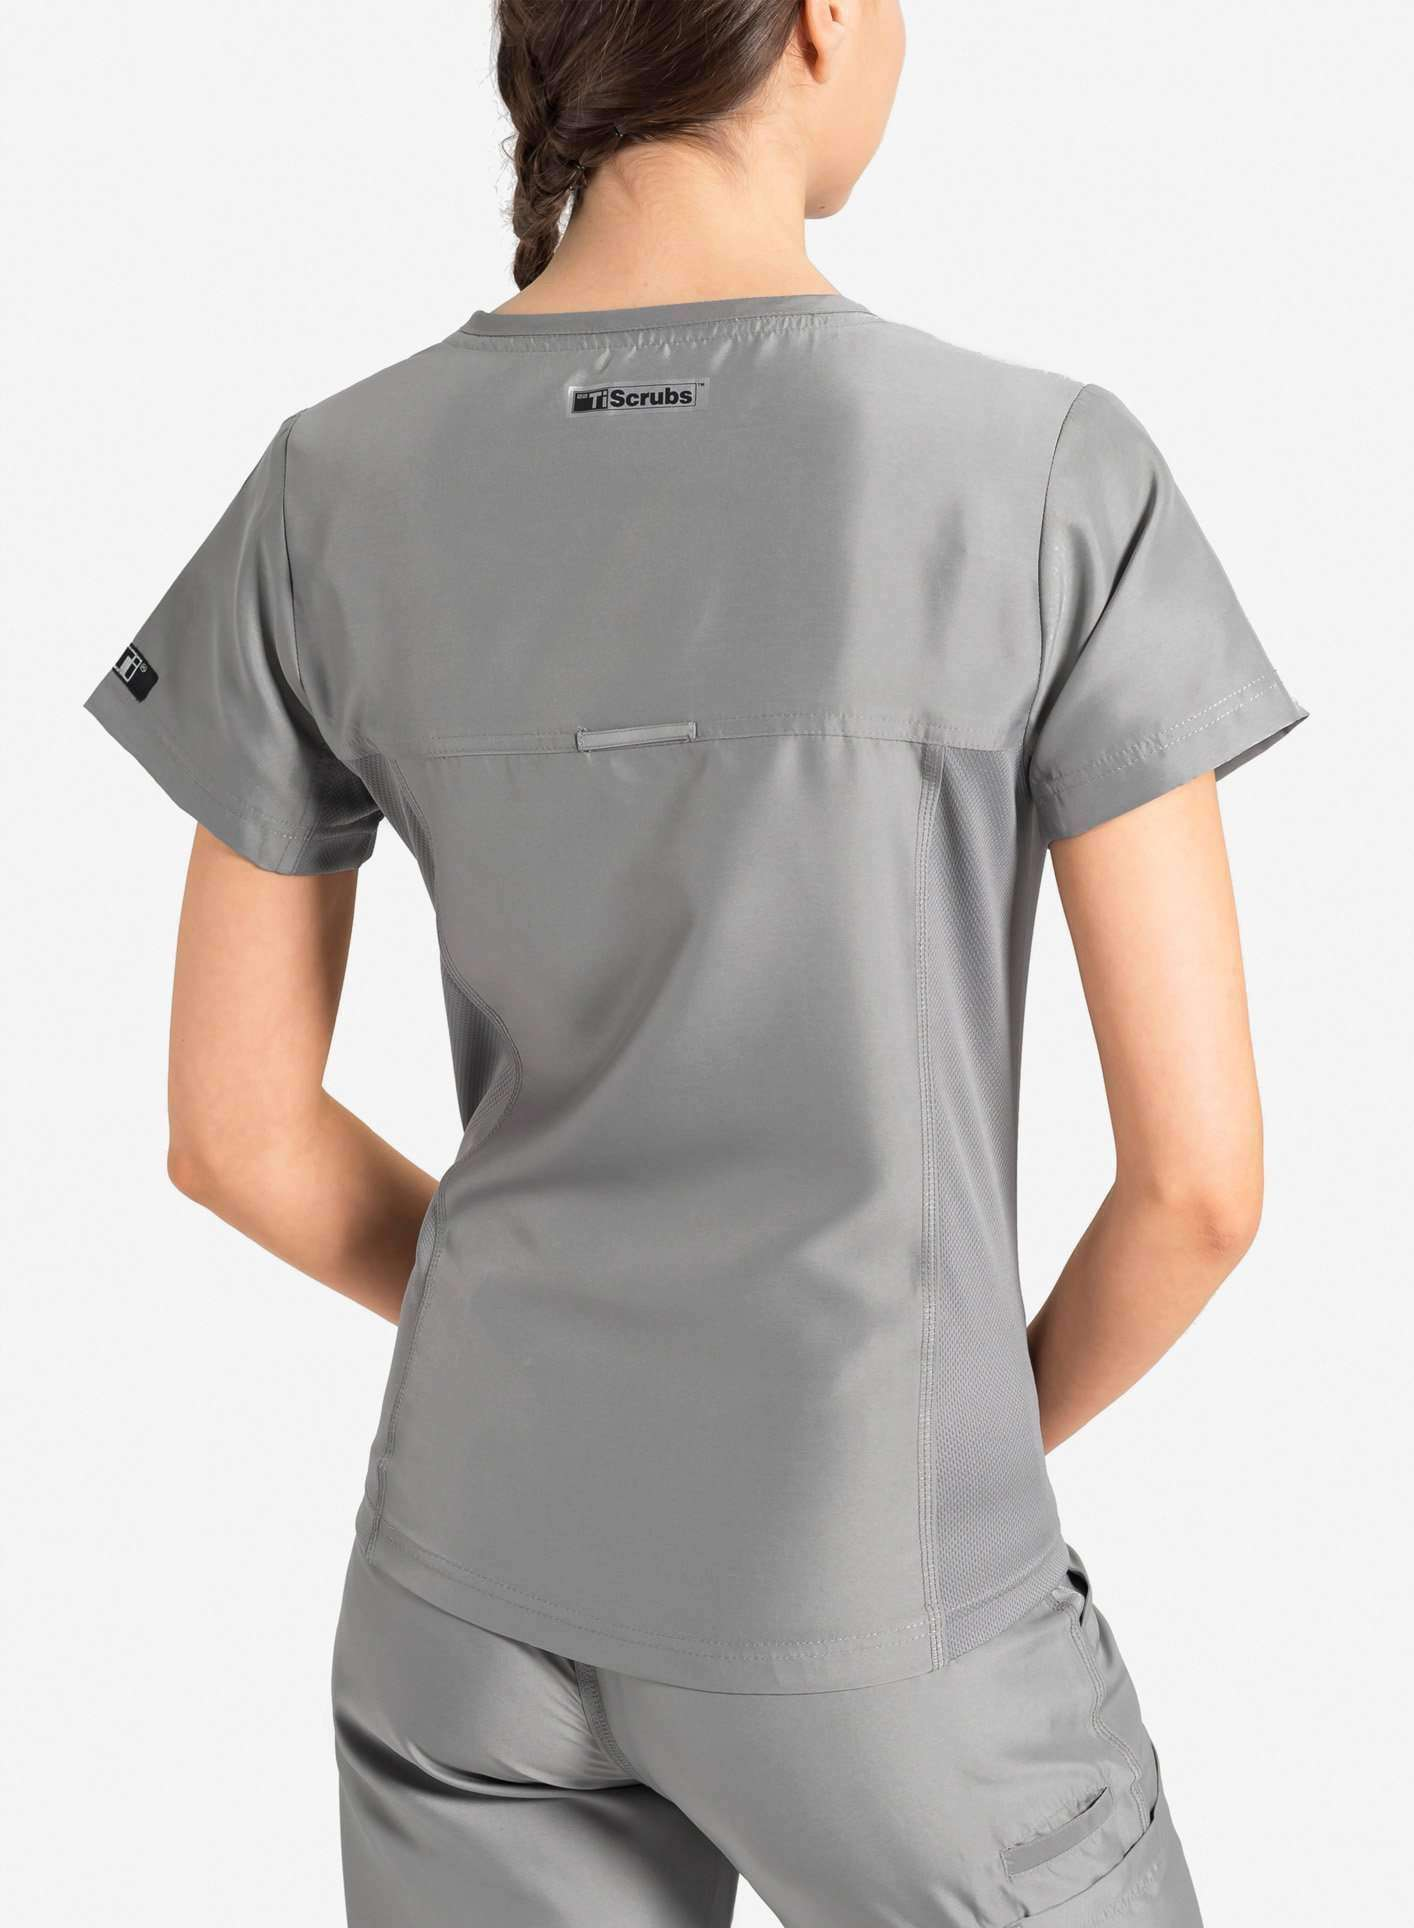 womens Elements short sleeve hidden pocket scrub top light grey